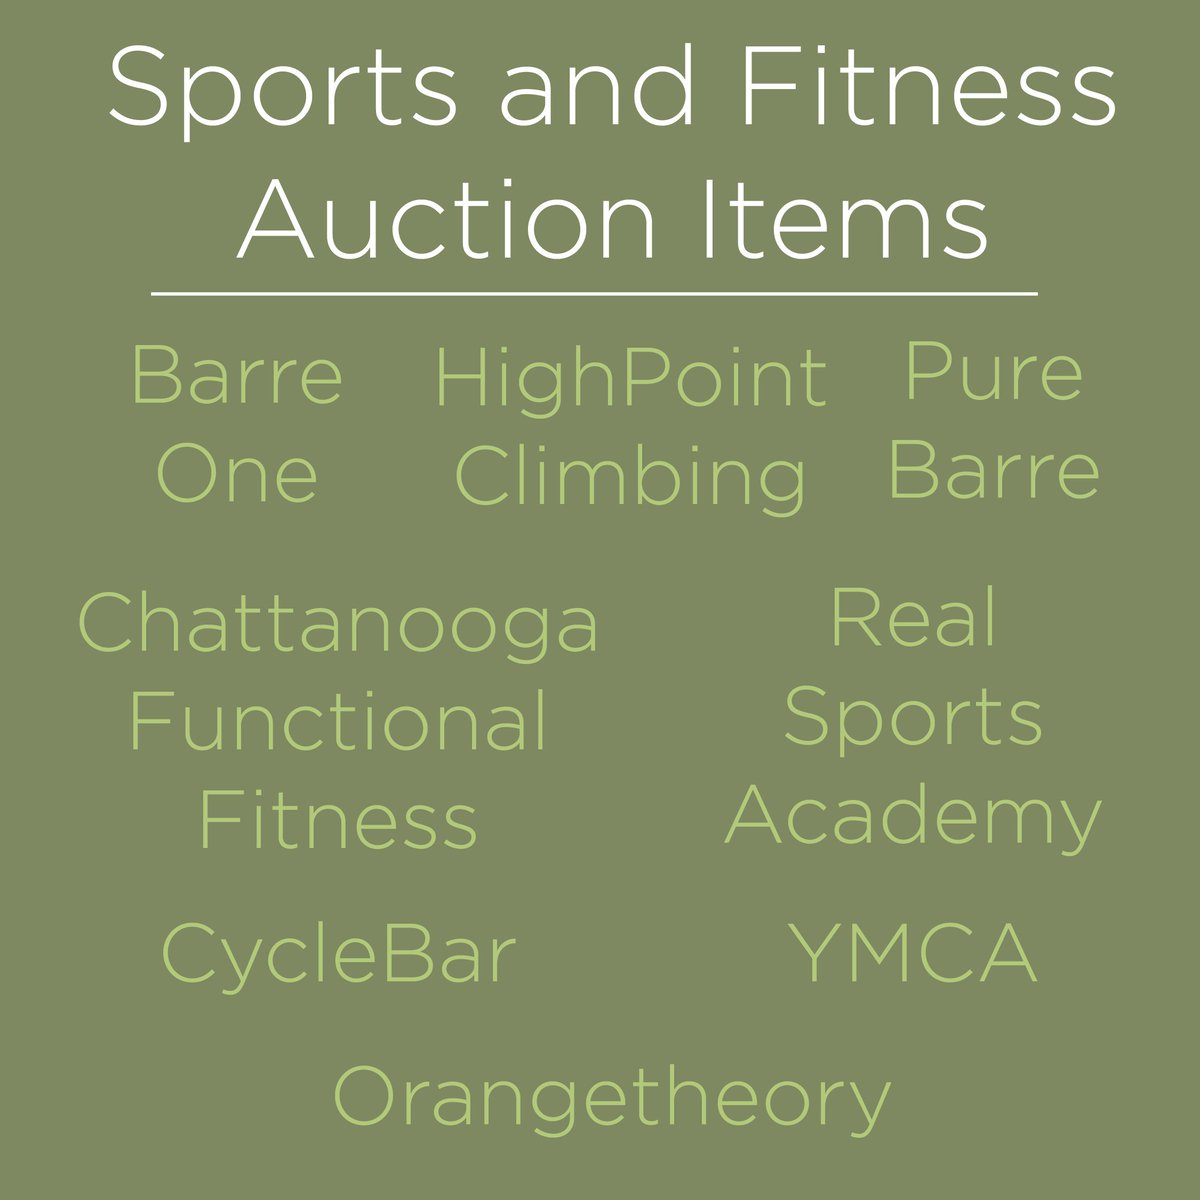 Austin Hatcher Foundation On Twitter Check Out A Few Of The Sports And Fitness Auction Items For Our 9th Annual Cellarbration Event This Friday Visit Our Website To Purchase Your Tickets Https T Co Cqbgwfmvt5